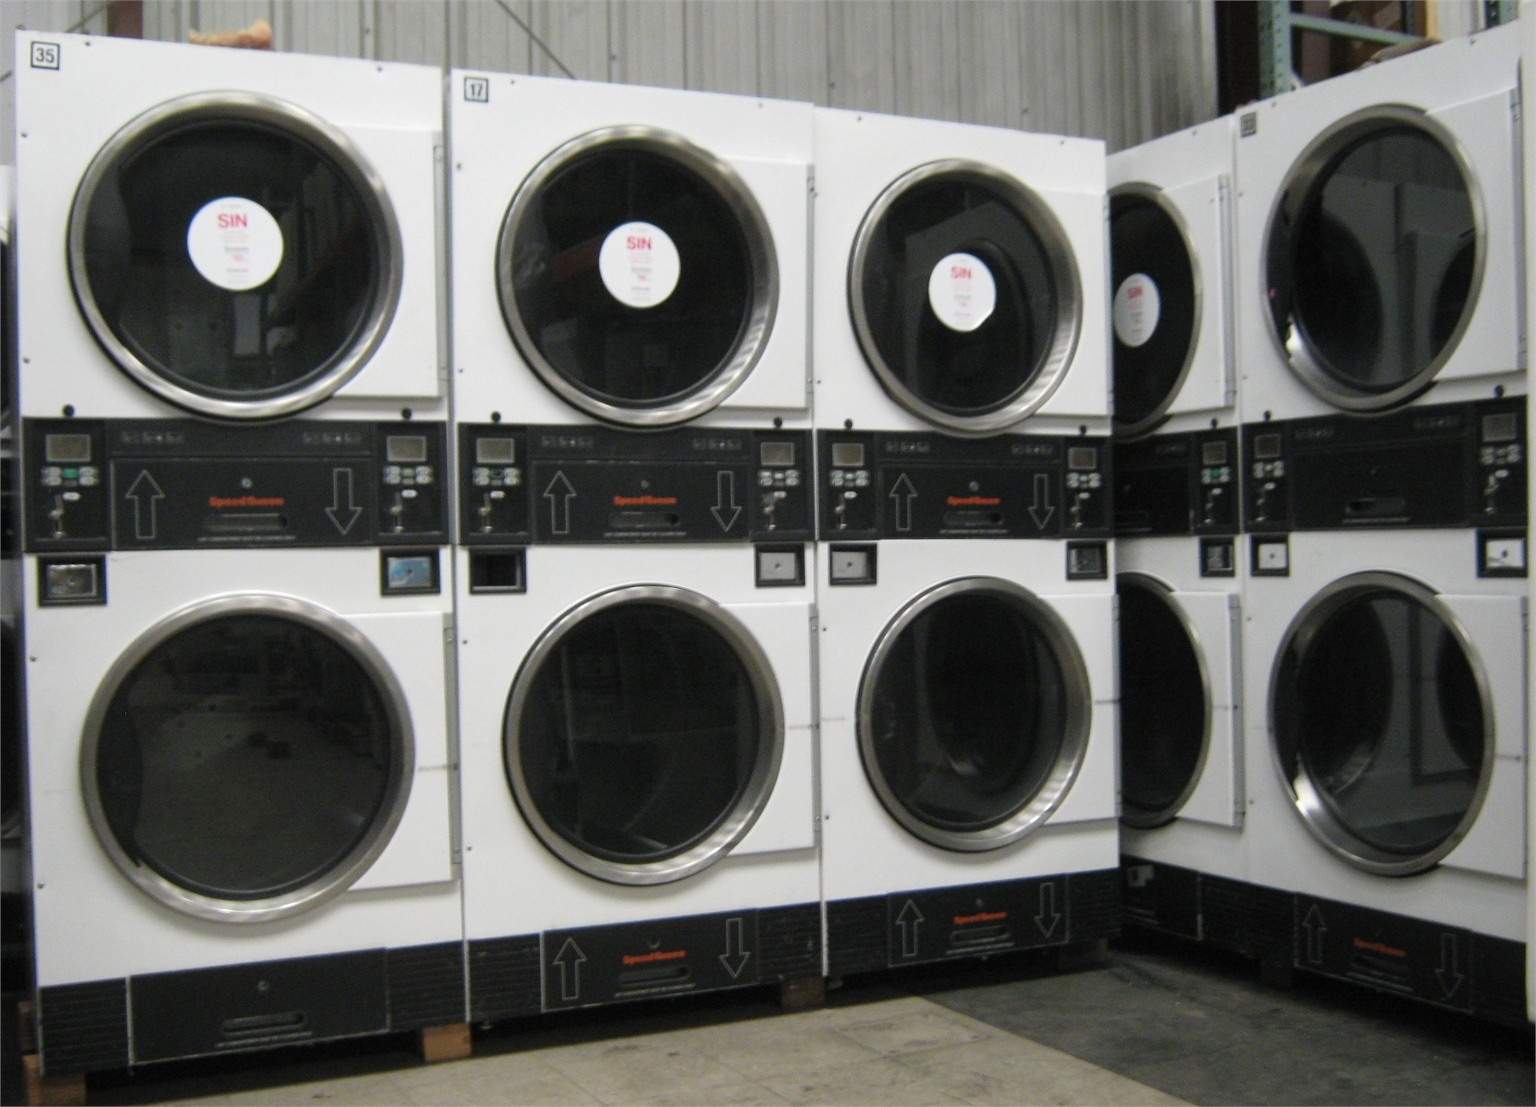 dryers 123laundry com